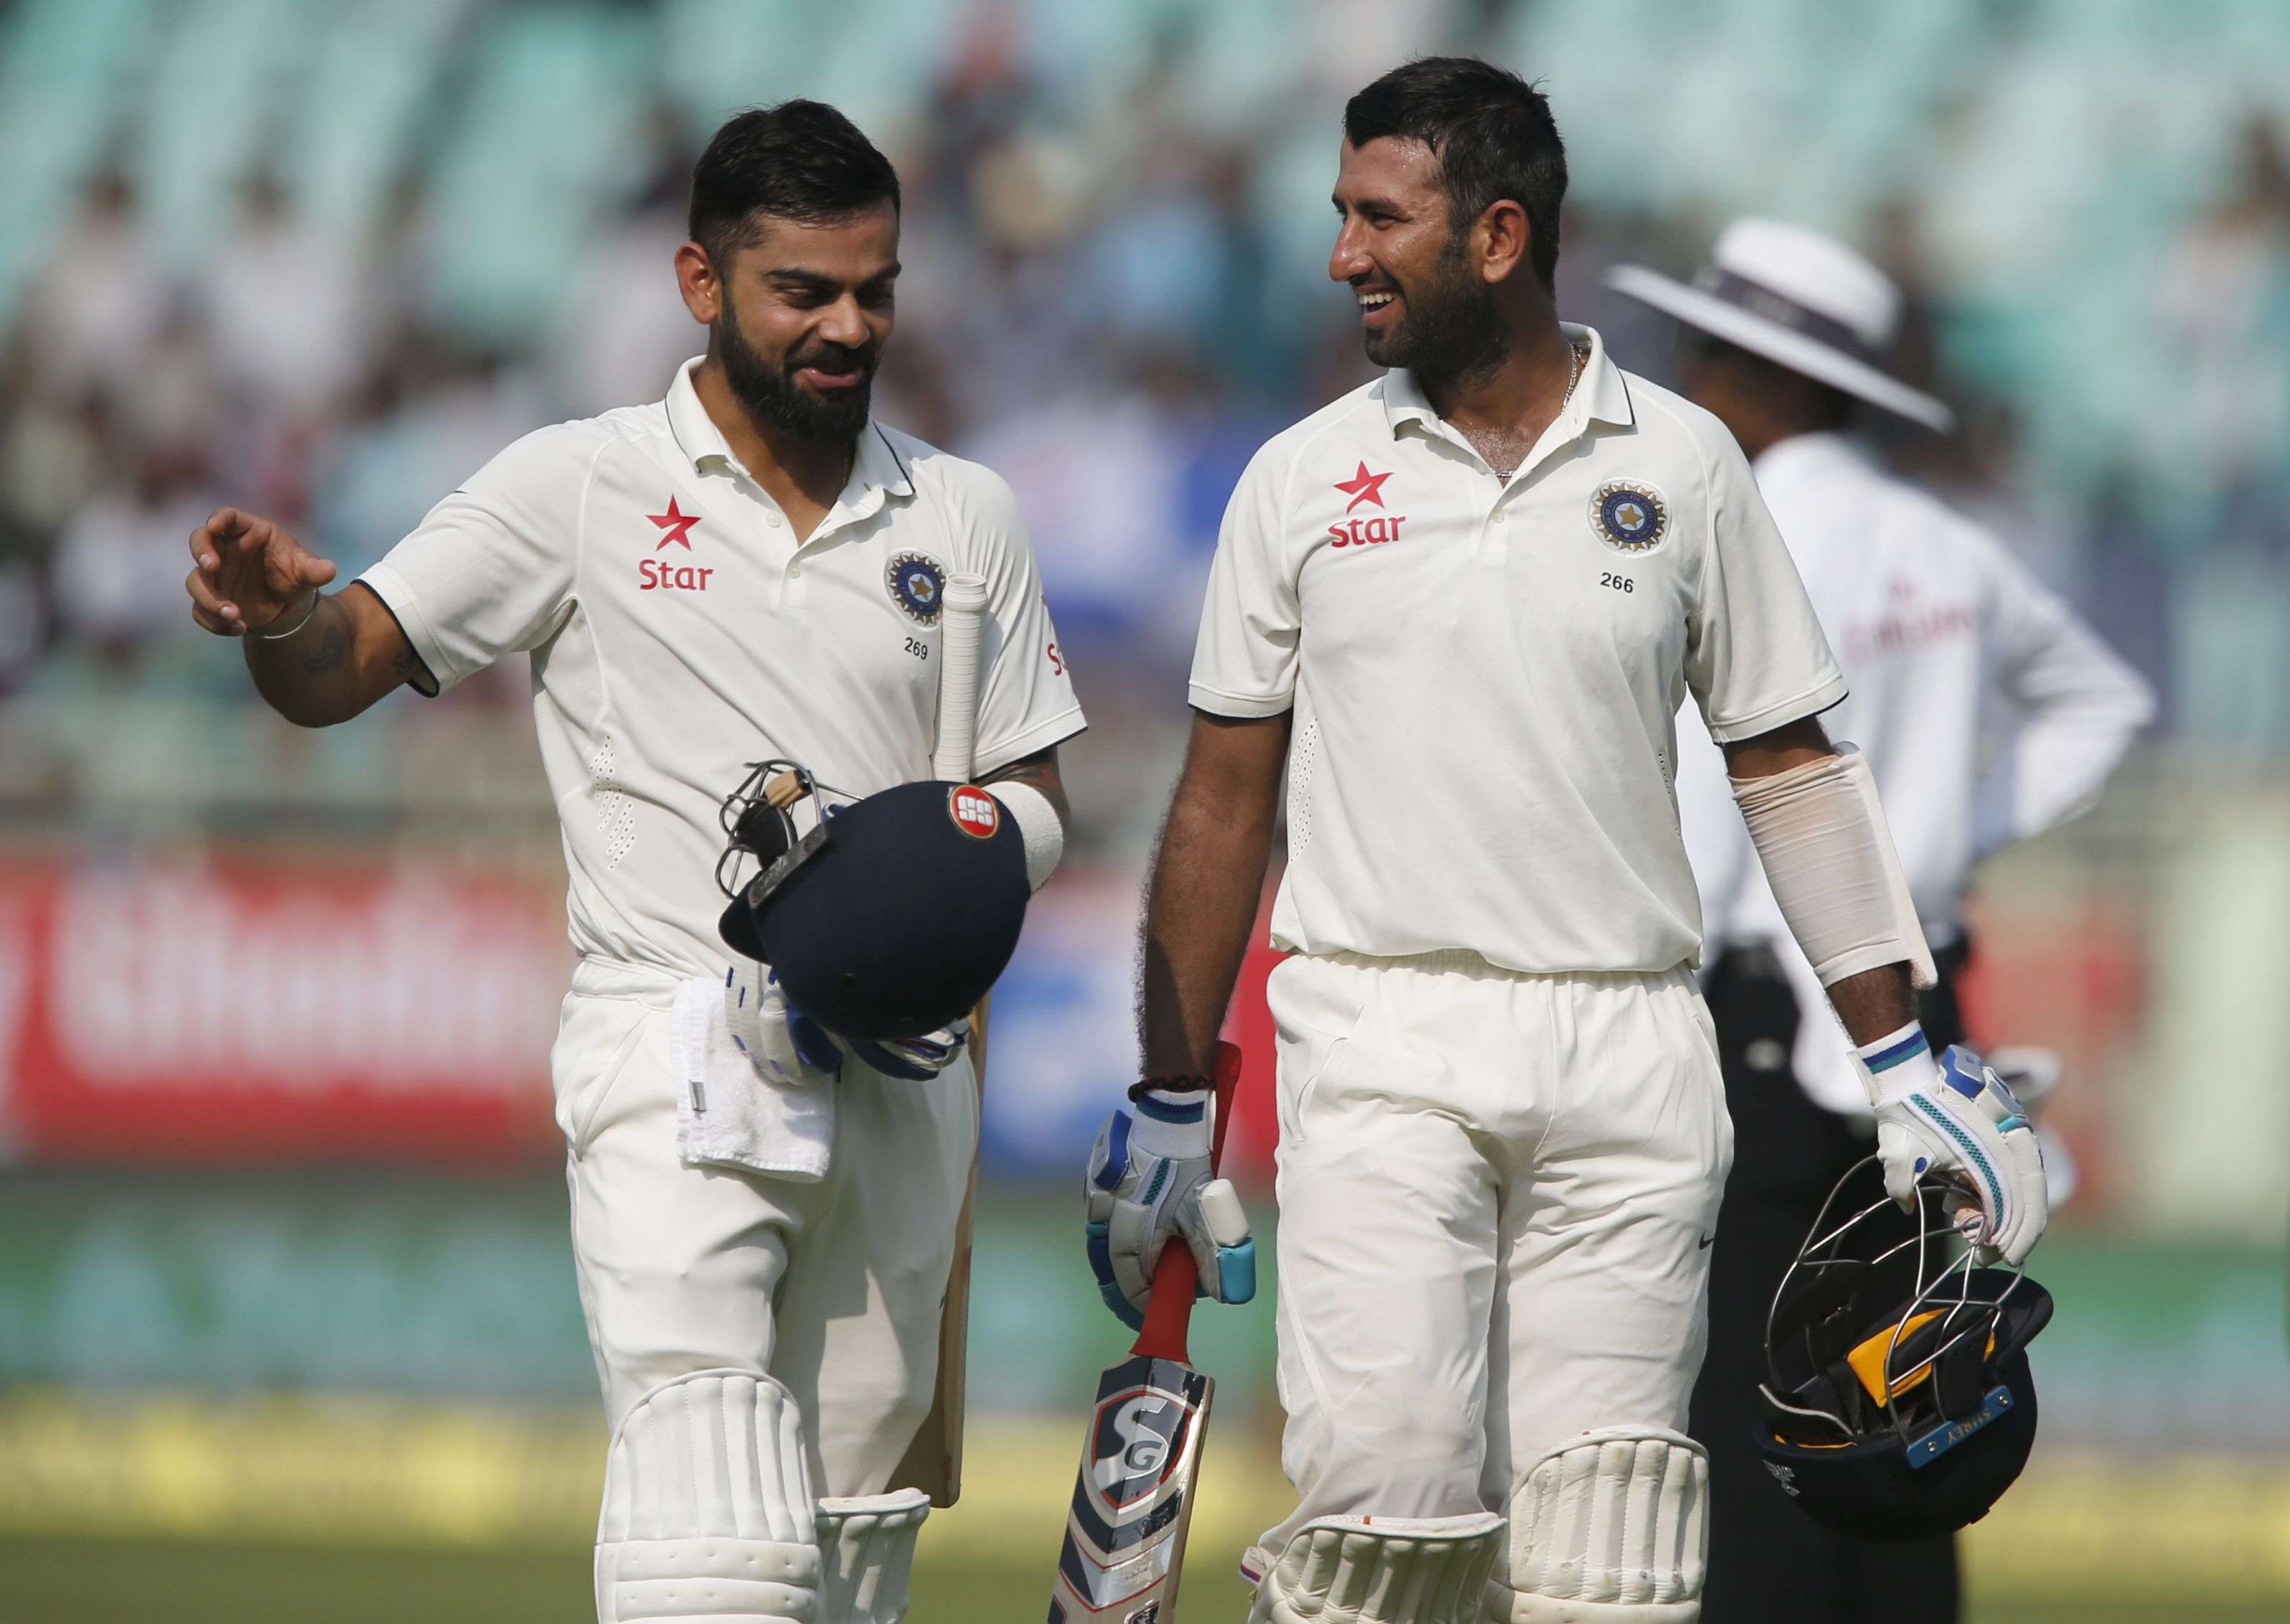 India's captain Virat Kohli, left, and Cheteshwar Pujara laugh as they leave the ground after a dog ran into the field during their first day of second cricket test match against England in Visakhapatnam, India, Thursday, Nov. 17, 2016. (AP Photo/Aijaz Rahi)